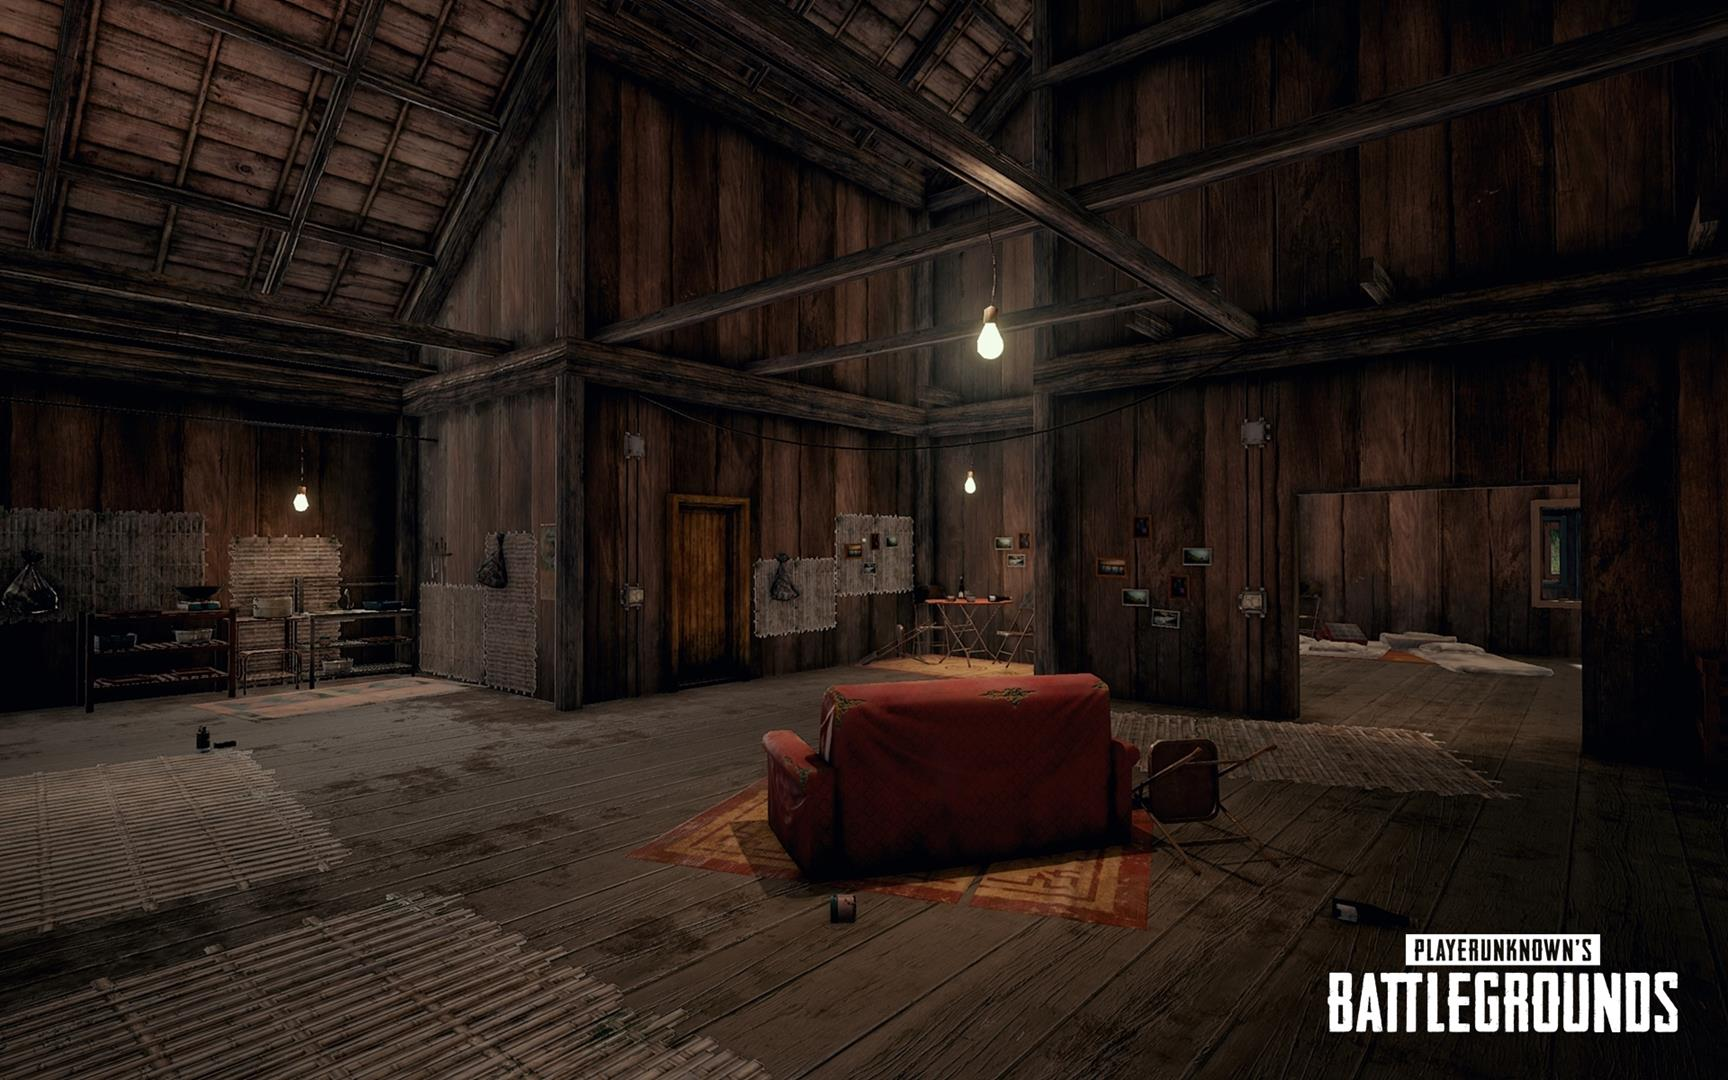 Playerunknowns Battlegrounds Is Extending Testing For The Sanhok Map For A Second Time Pubg Corp Announced The Extension In A Blog Post Earlier Today